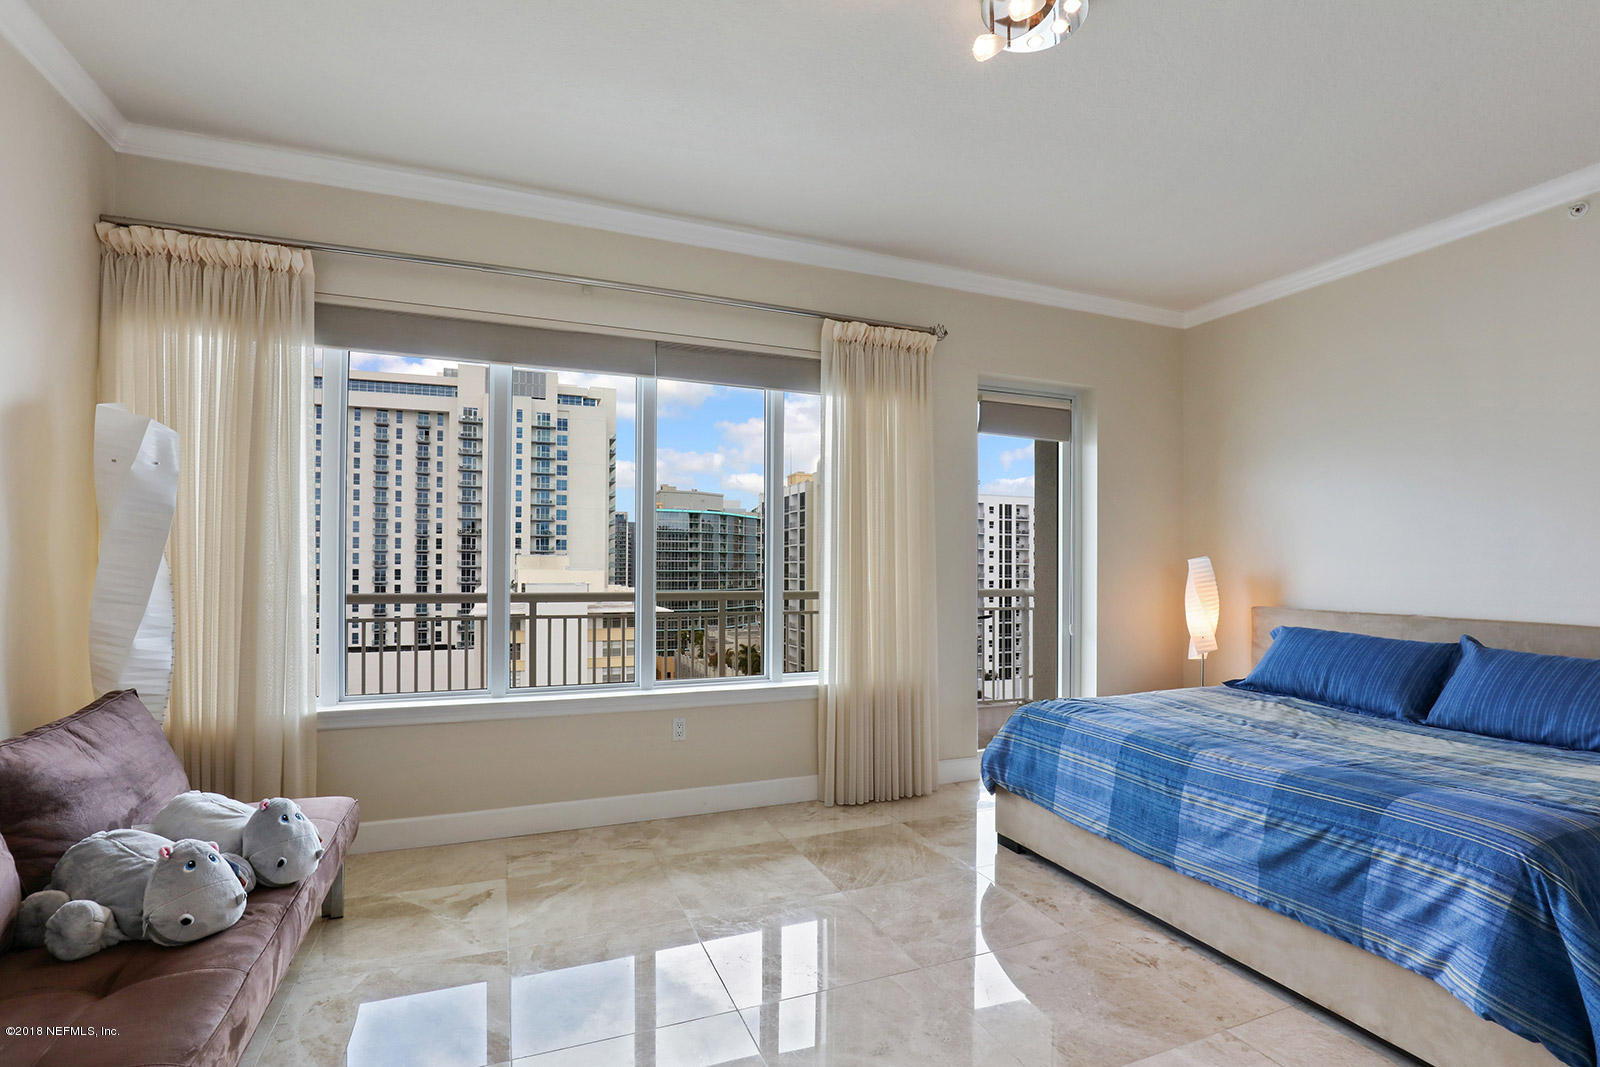 100 EOLA, ORLANDO, FLORIDA 32801, 2 Bedrooms Bedrooms, ,2 BathroomsBathrooms,Residential - condos/townhomes,For sale,EOLA,935245